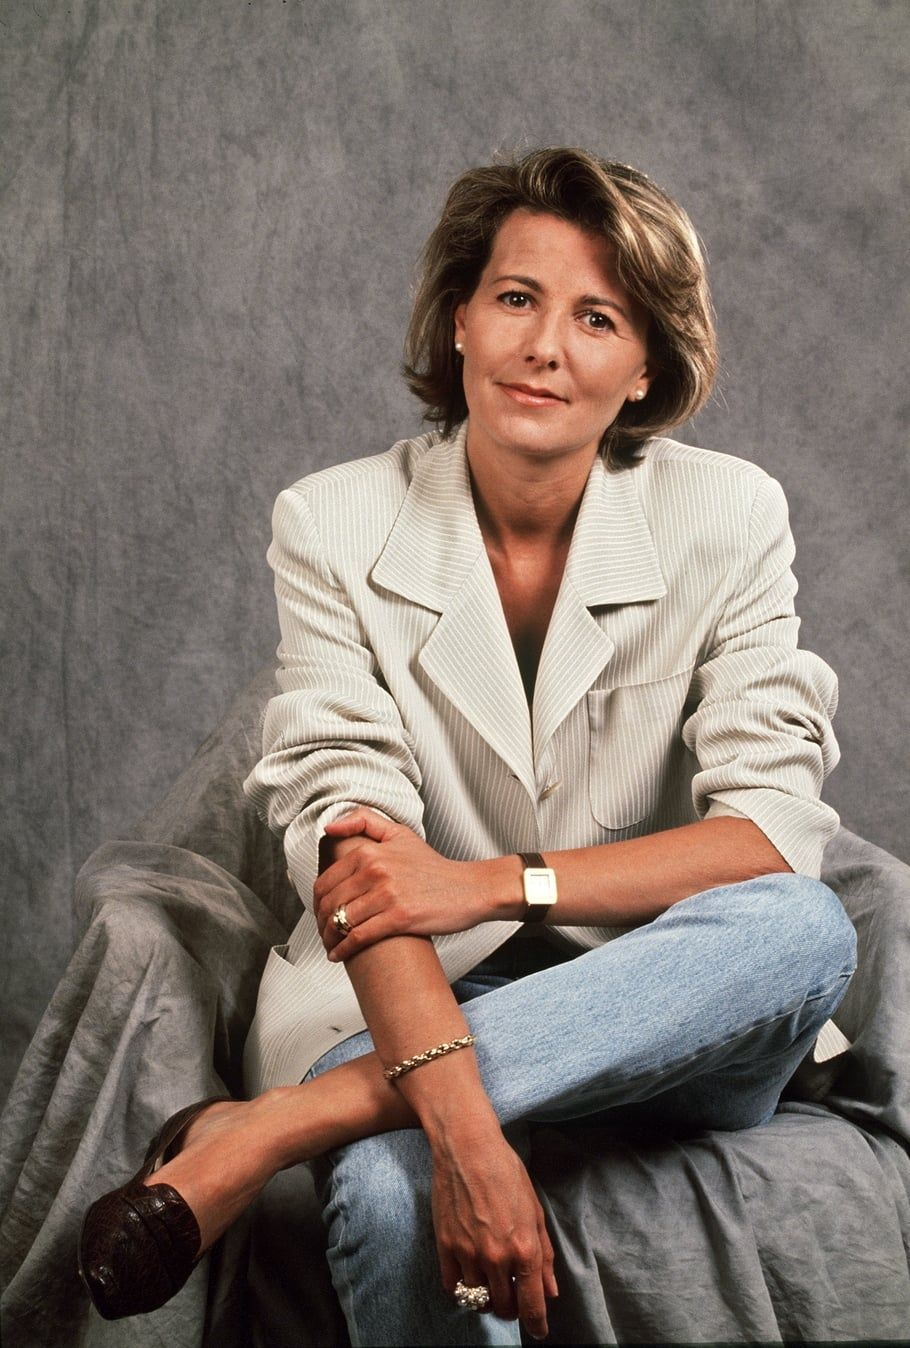 Snapchat Claire Chazal naked (13 photo), Sexy, Leaked, Feet, cameltoe 2019